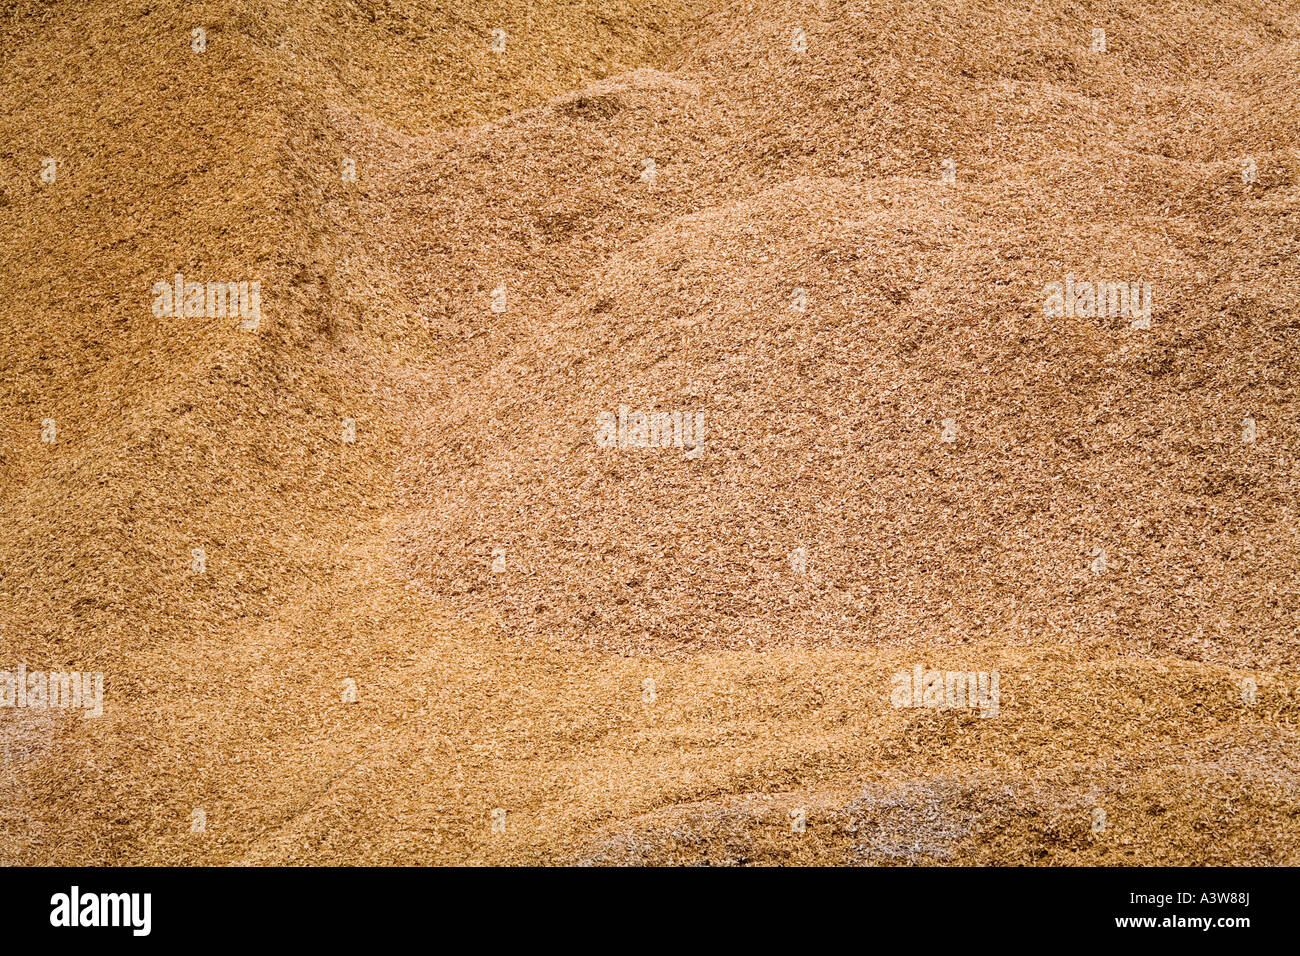 Chippings Stock Photos Amp Chippings Stock Images Alamy